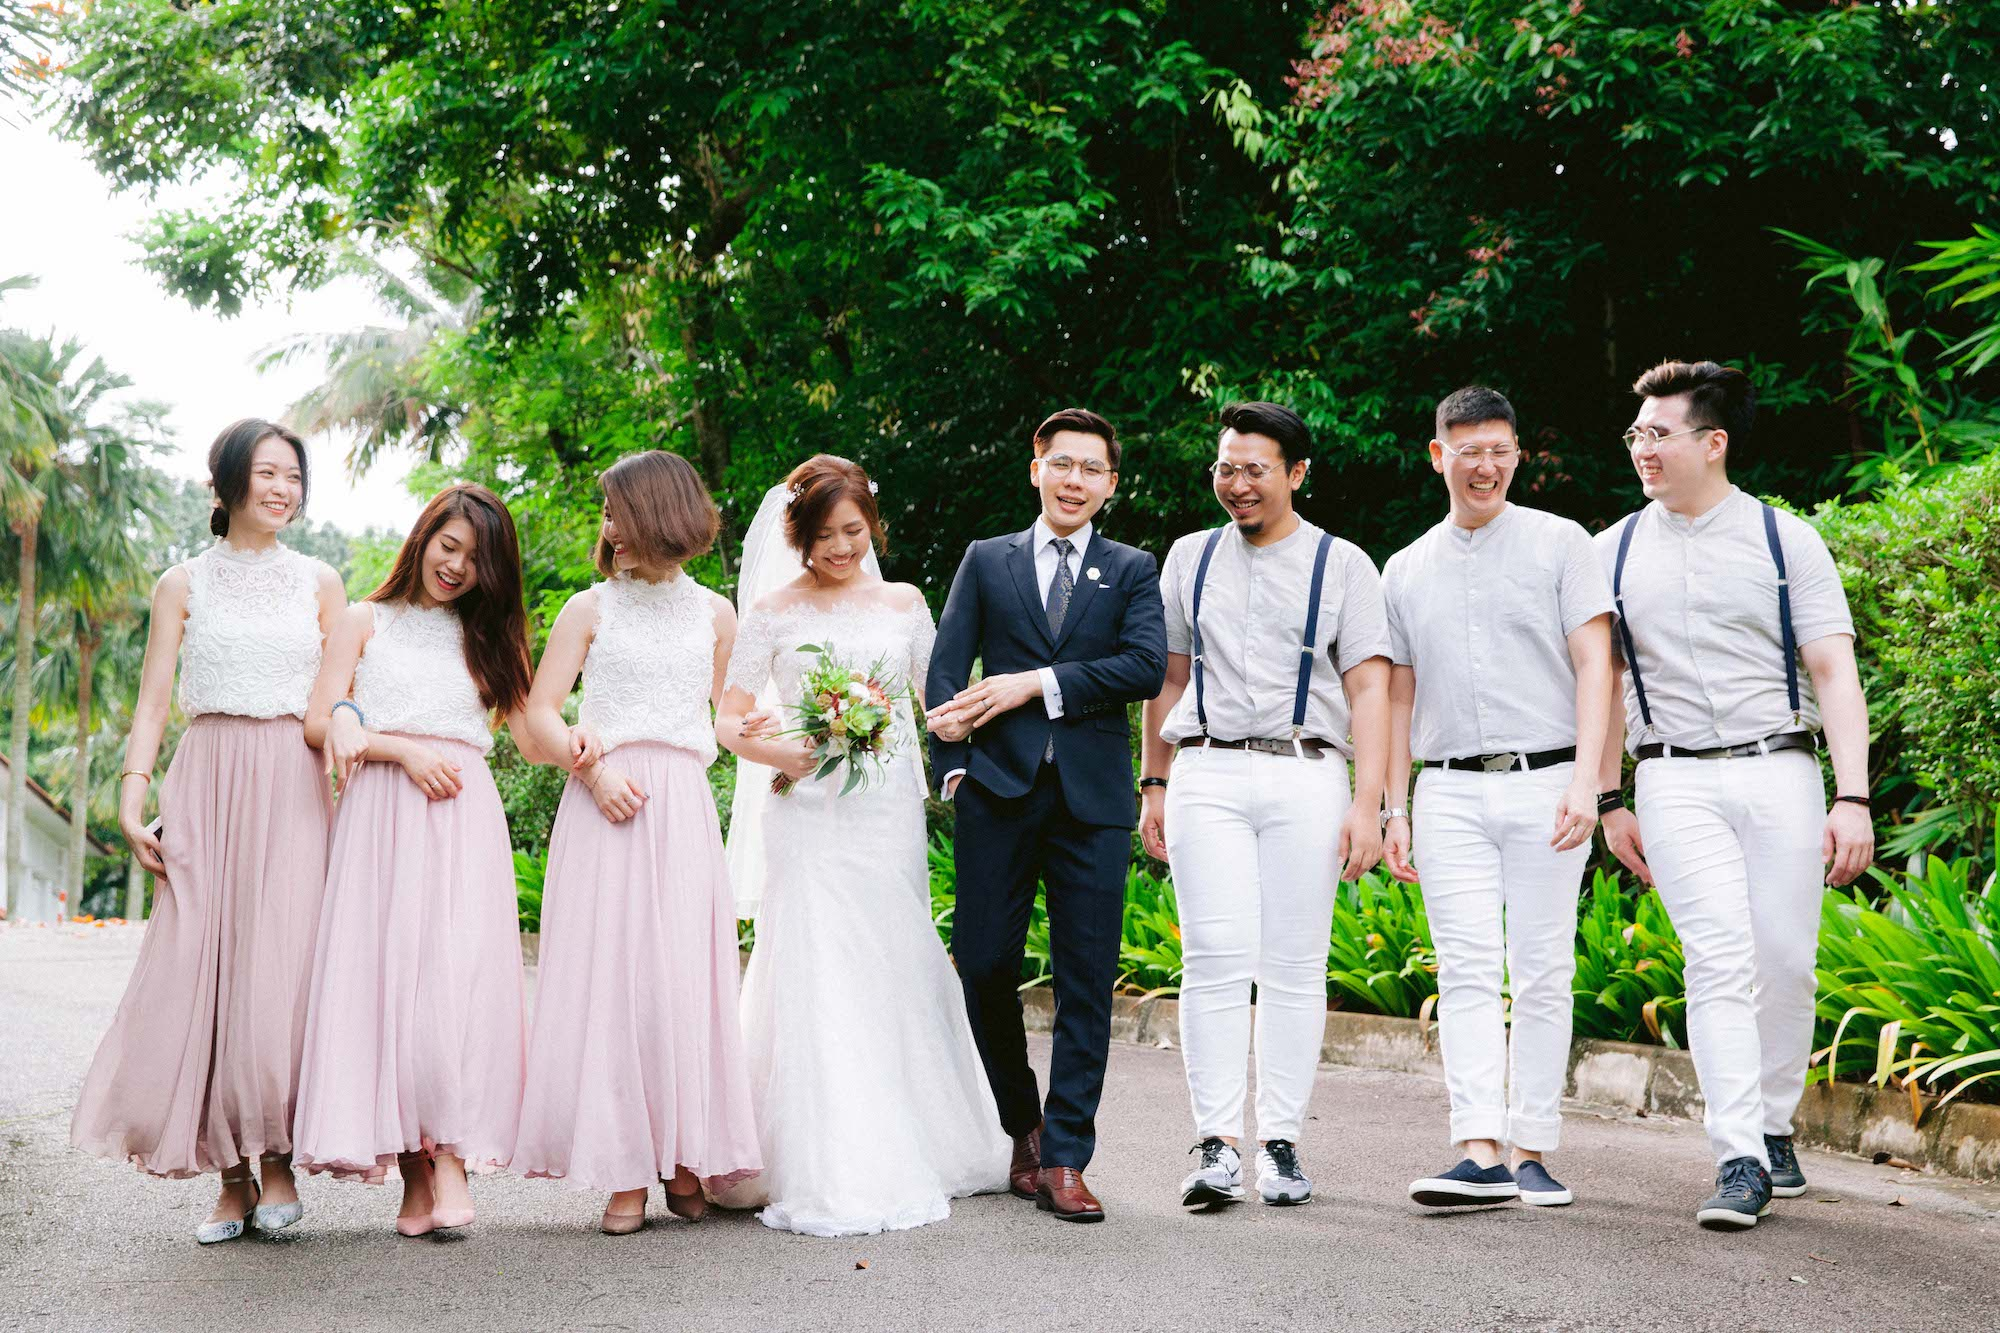 Freida & Winson - Singapore Wedding Photography  24.jpg